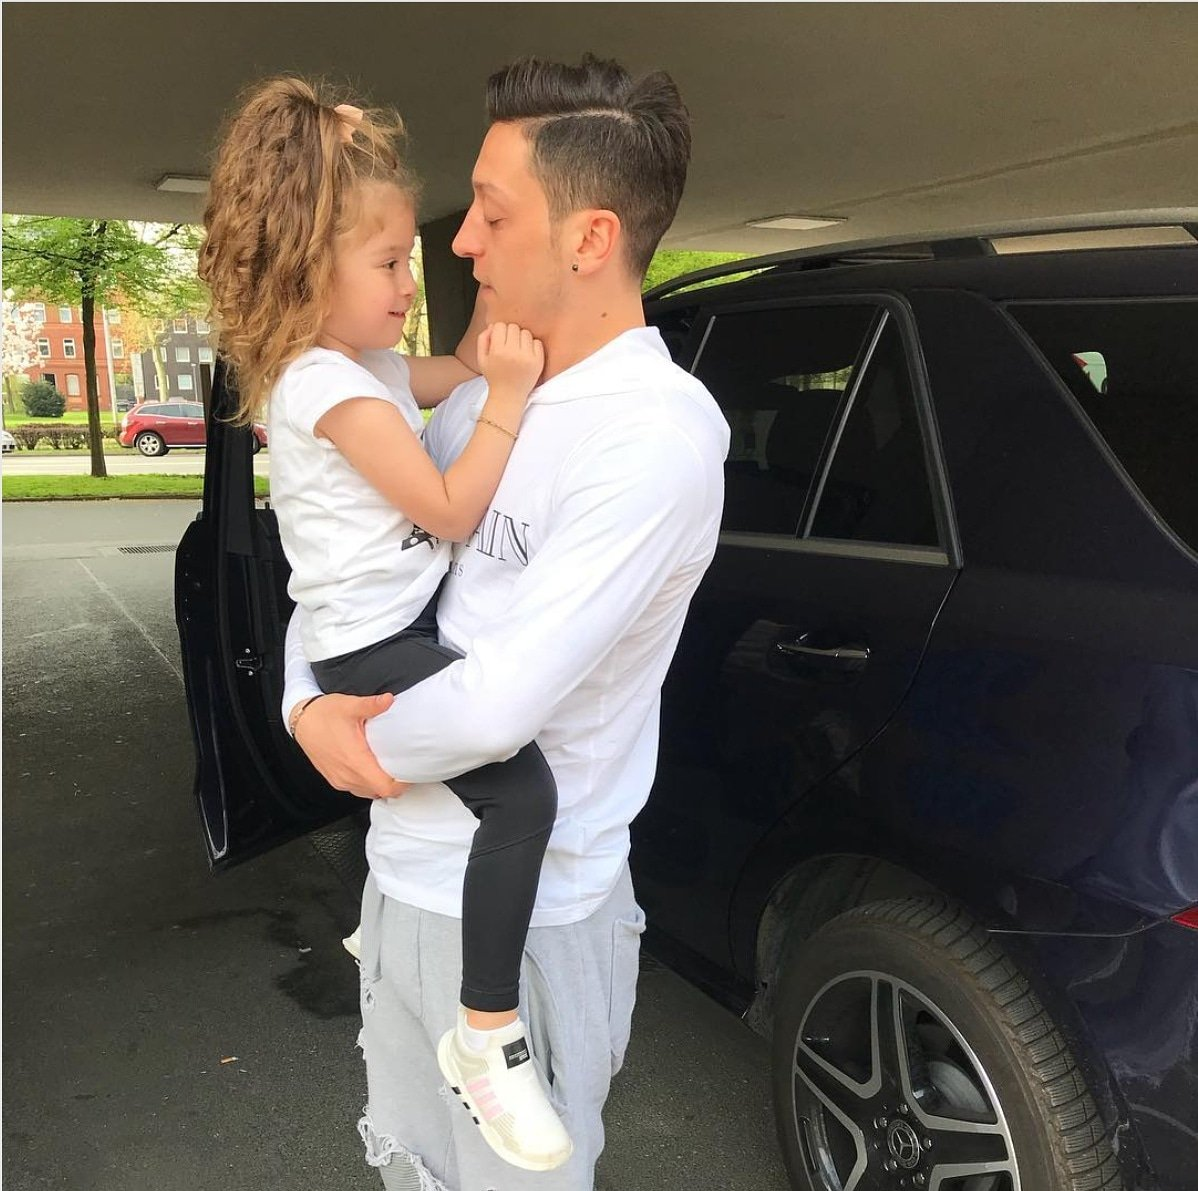 See you soon my little princess ❤ #Mira #UncleMesut #Familytime